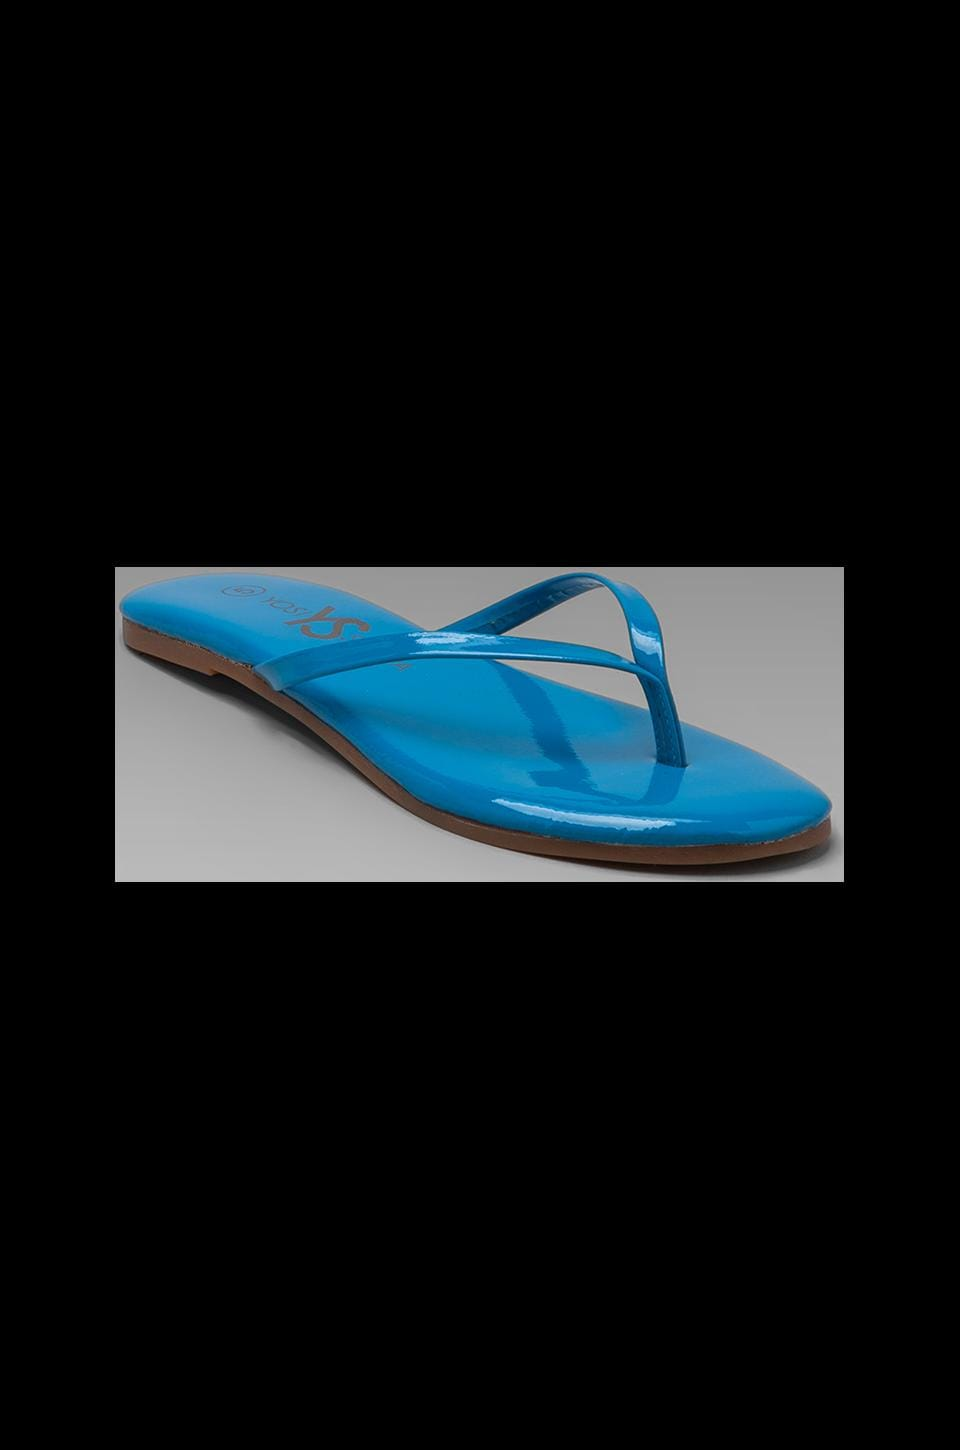 Yosi Samra Patent Leather Sandal in True Blue